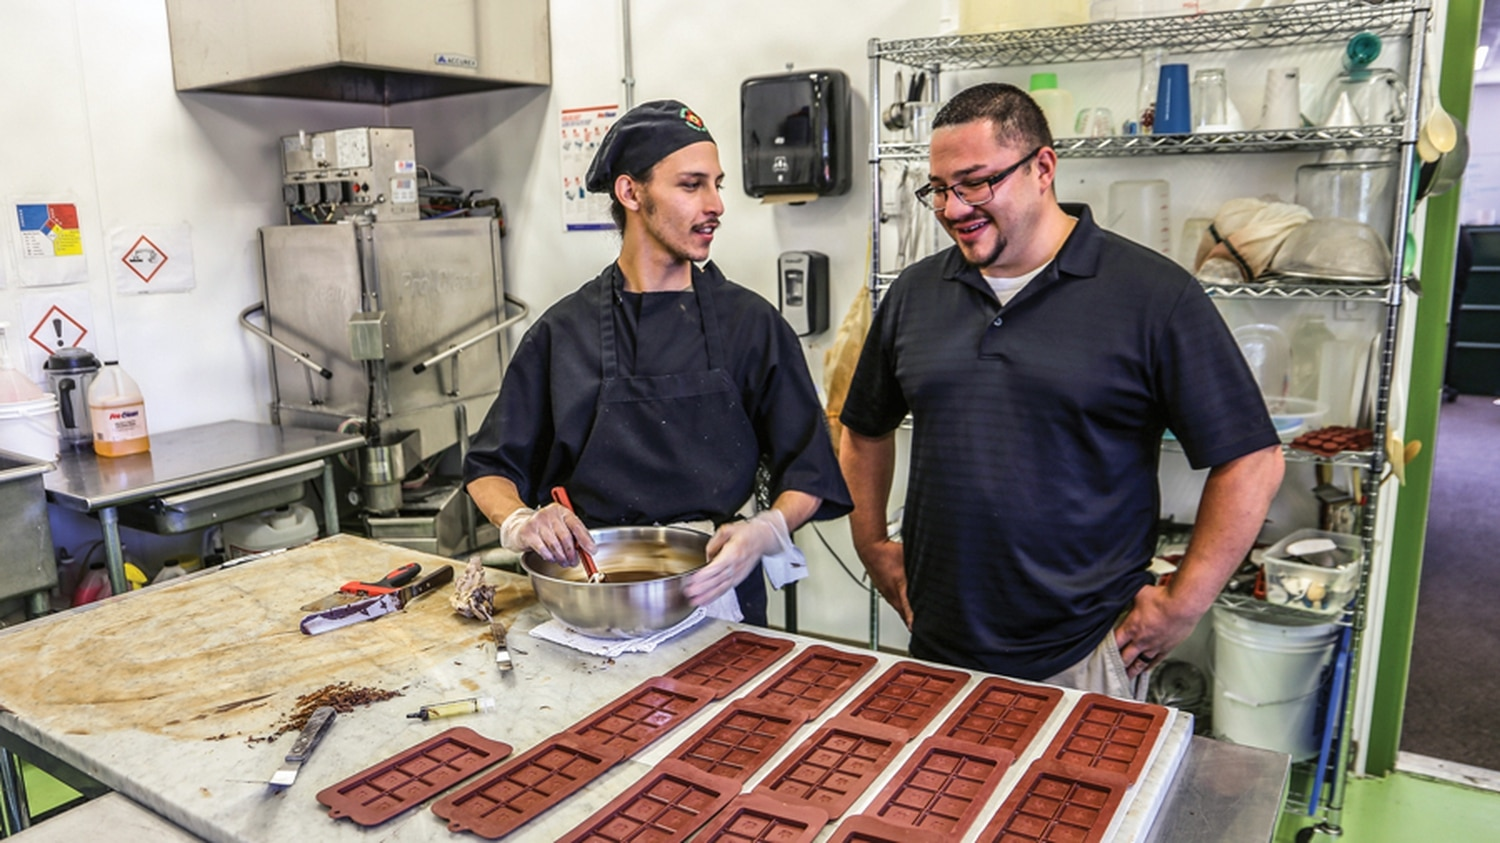 Michael Salazar, left, prepares chocolate containing cannabis in the kitchen at New MexiCann dispensary in Santa Fe as Josh Aldarete looks on.